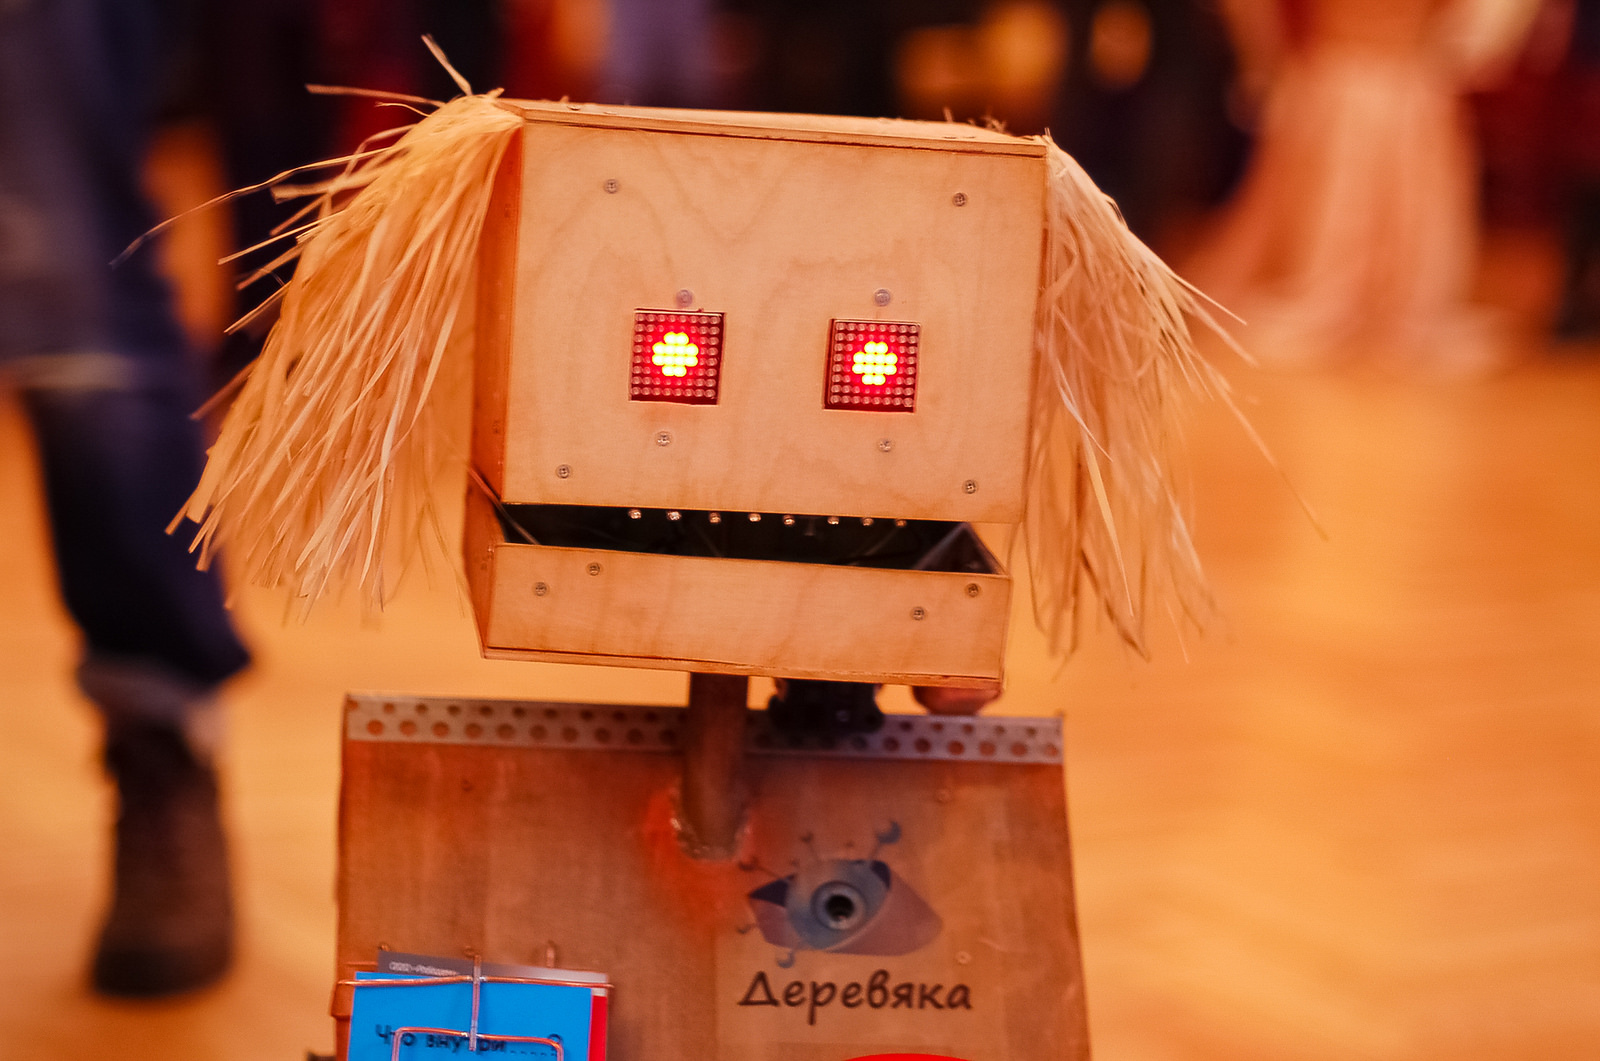 A wooden robot roamed the hall and mingled with guests during the break. Photo: TEDxMoscow